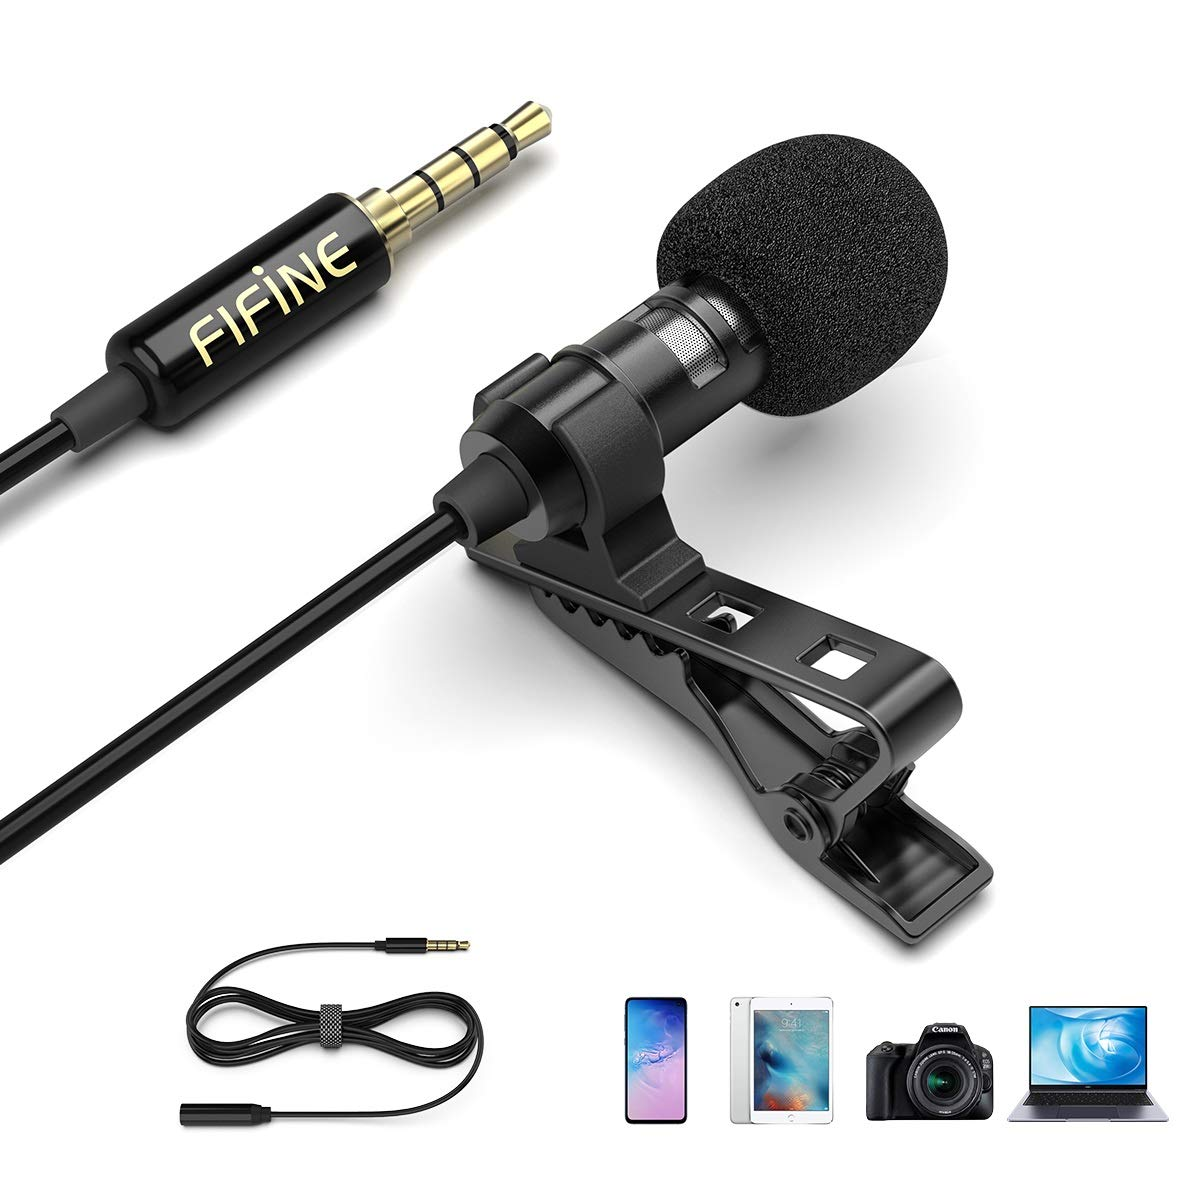 Amazon Com Fifine Lavalier Lapel Microphone 3 5mm Clip On Mic For Youtube Video Recording Vlog Mini External Mic For Iphone Ipad Android Cell Phone Dslr Camera Pc Laptop Mac Computer Noise Reduction C1 Musical